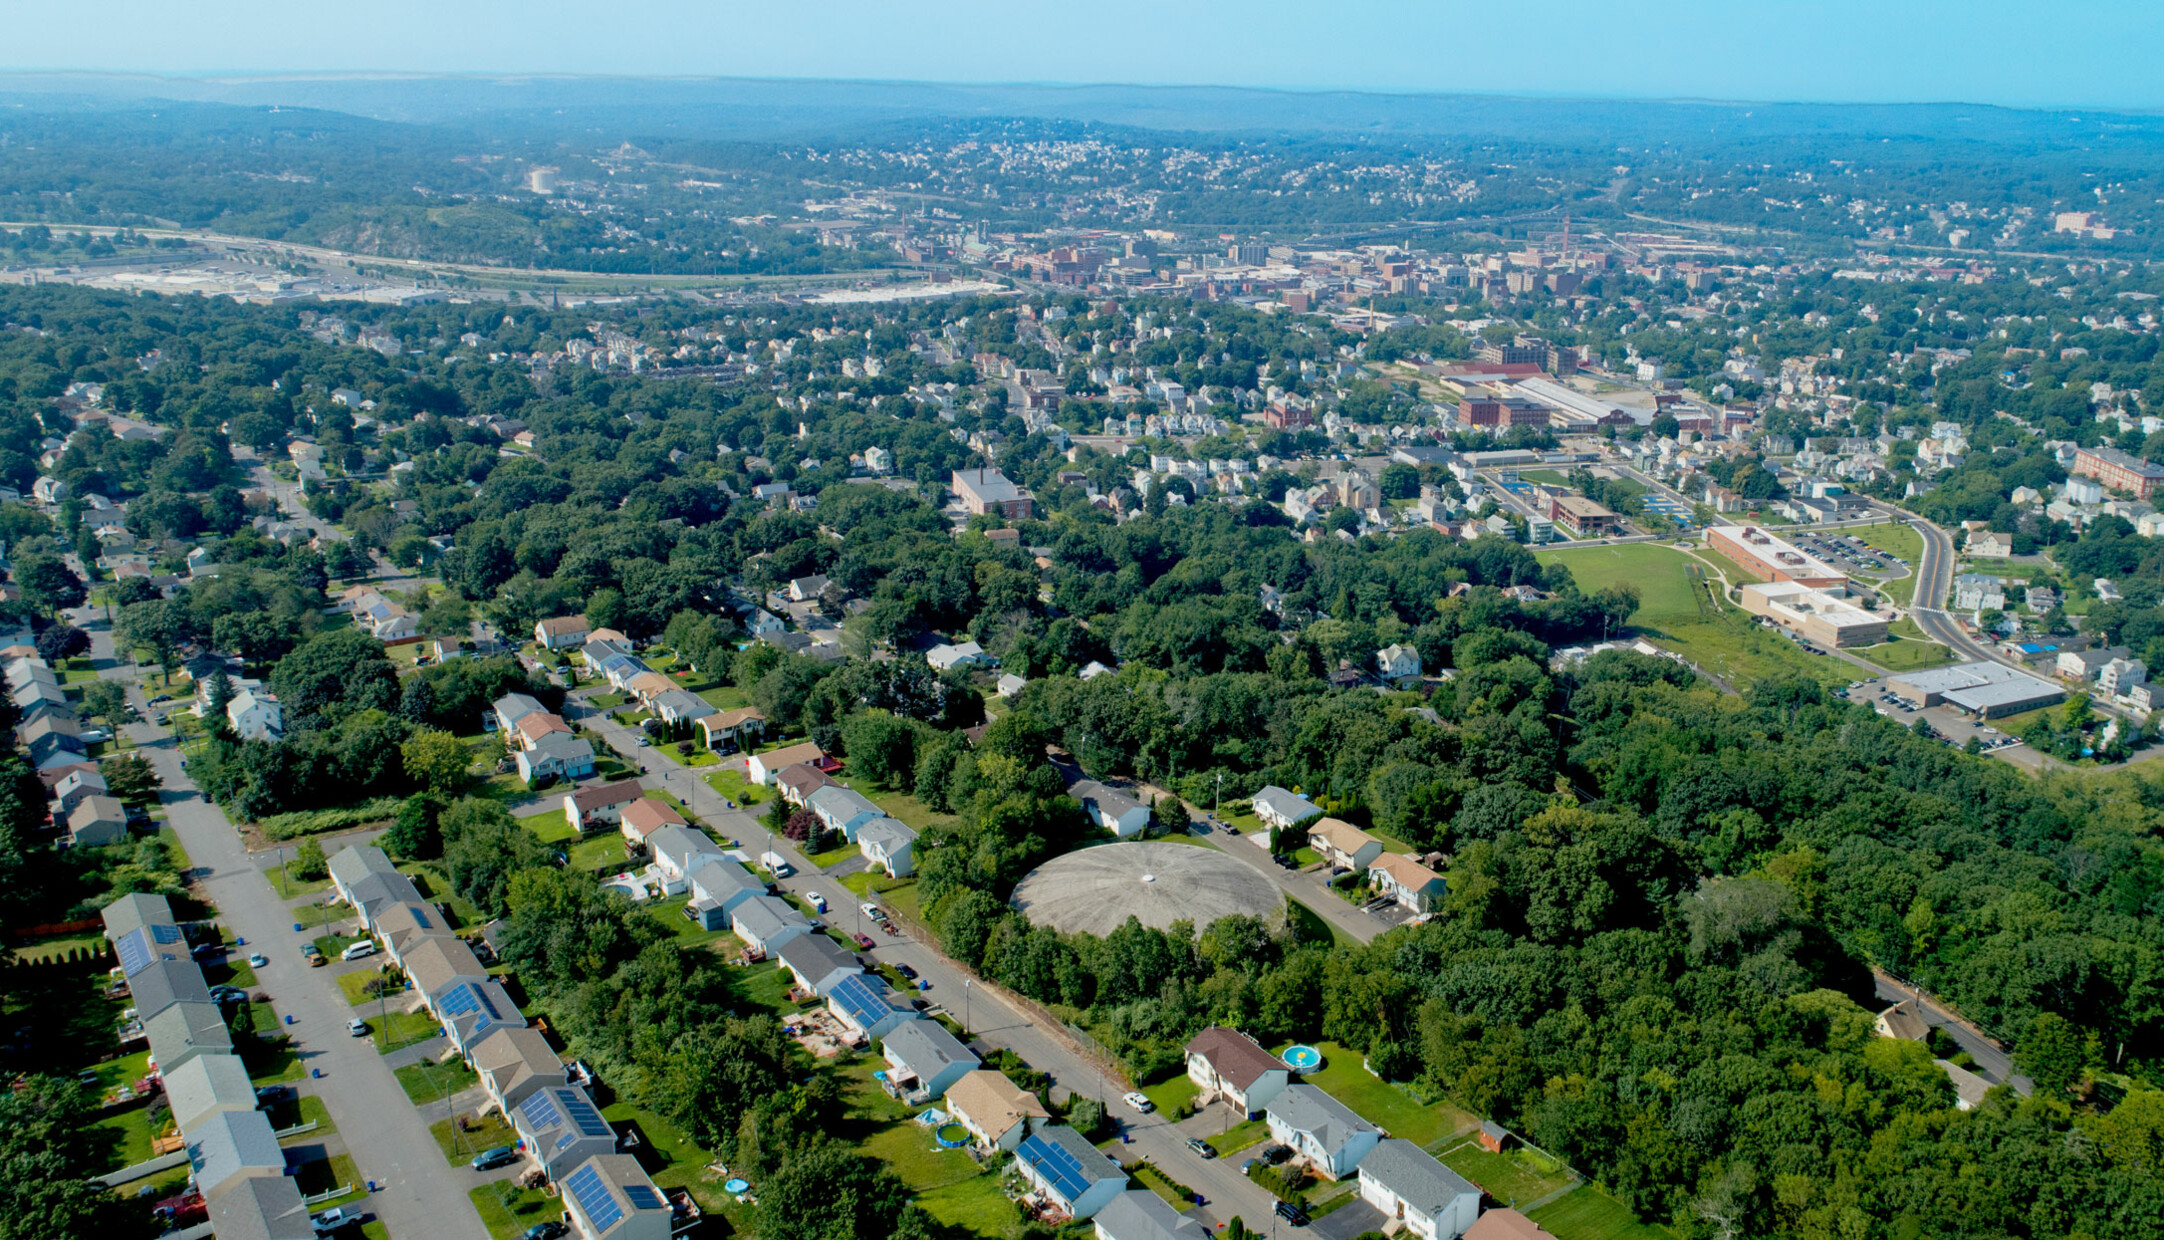 An aerial view of houses and streets in the Arlington neighborhood in Waterbury